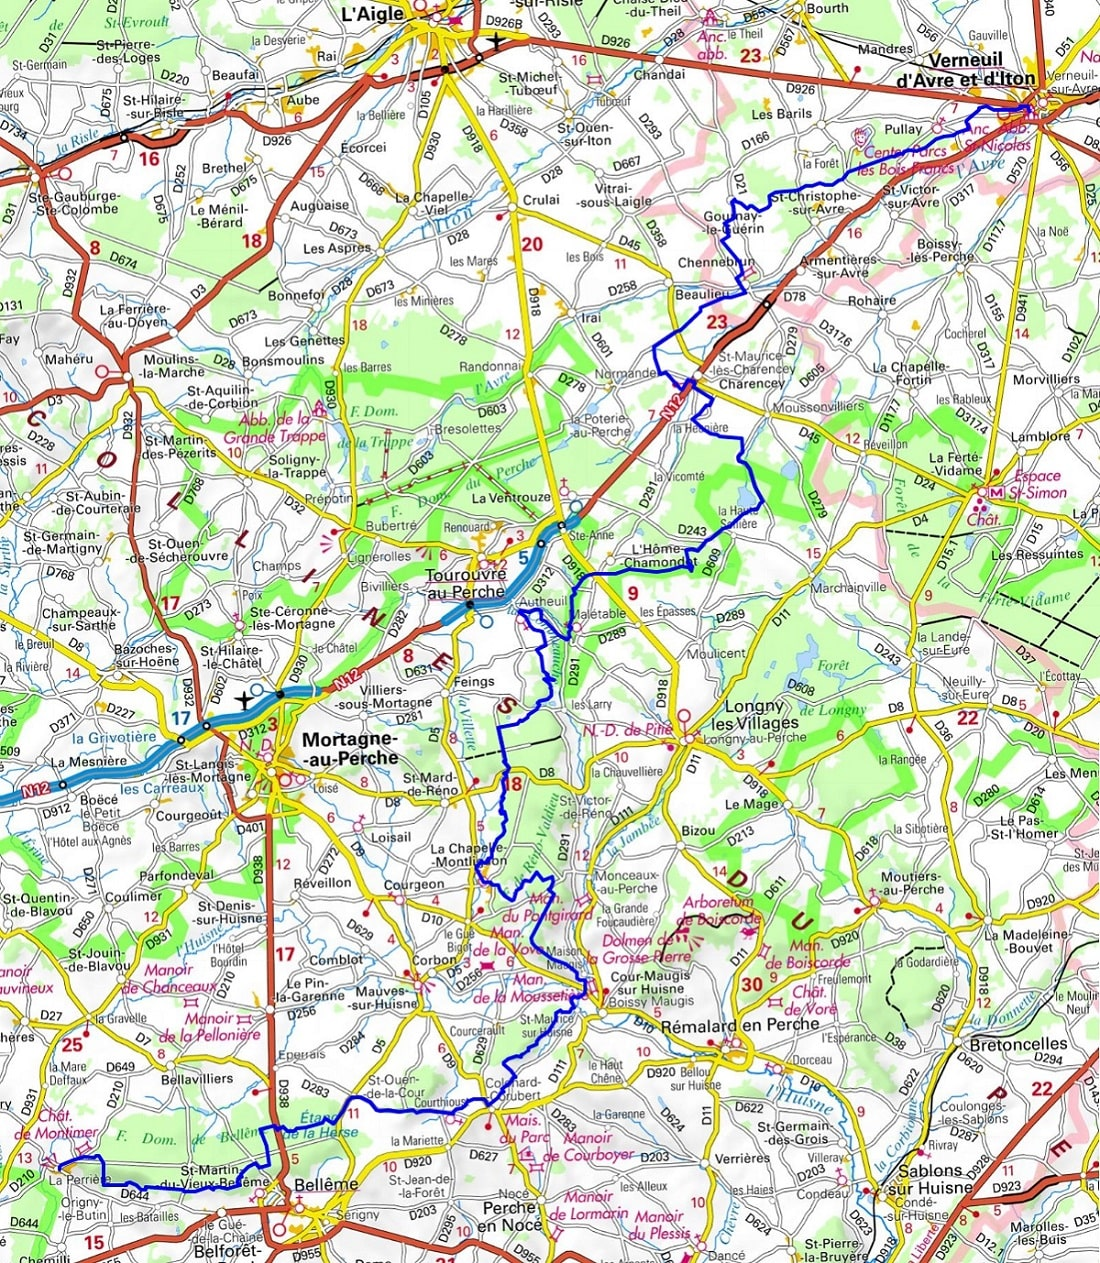 GR22 Walking from Verneuil-sur-Avre (Eure) to La Perriere (Orne) 1